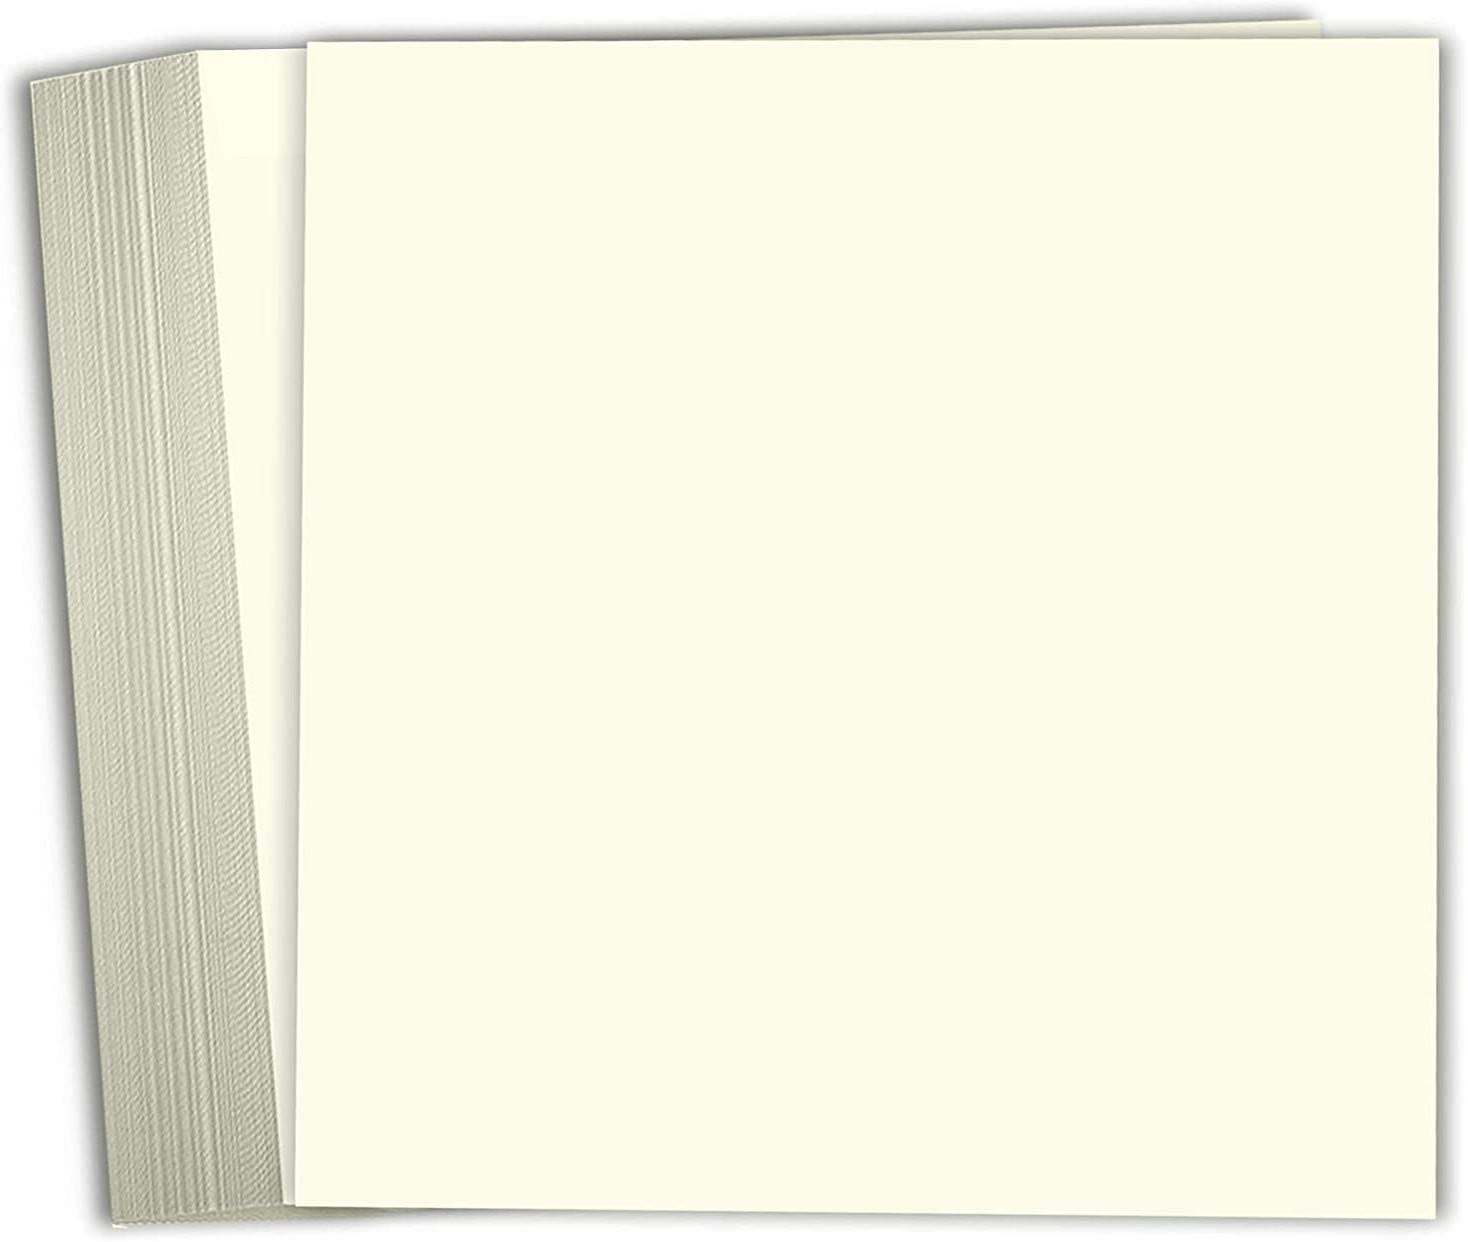 Hamilco Card Stock Scrapbook Paper 12x12 Cardstock Colored Clearance SALE! Limited time! Cream Ranking integrated 1st place